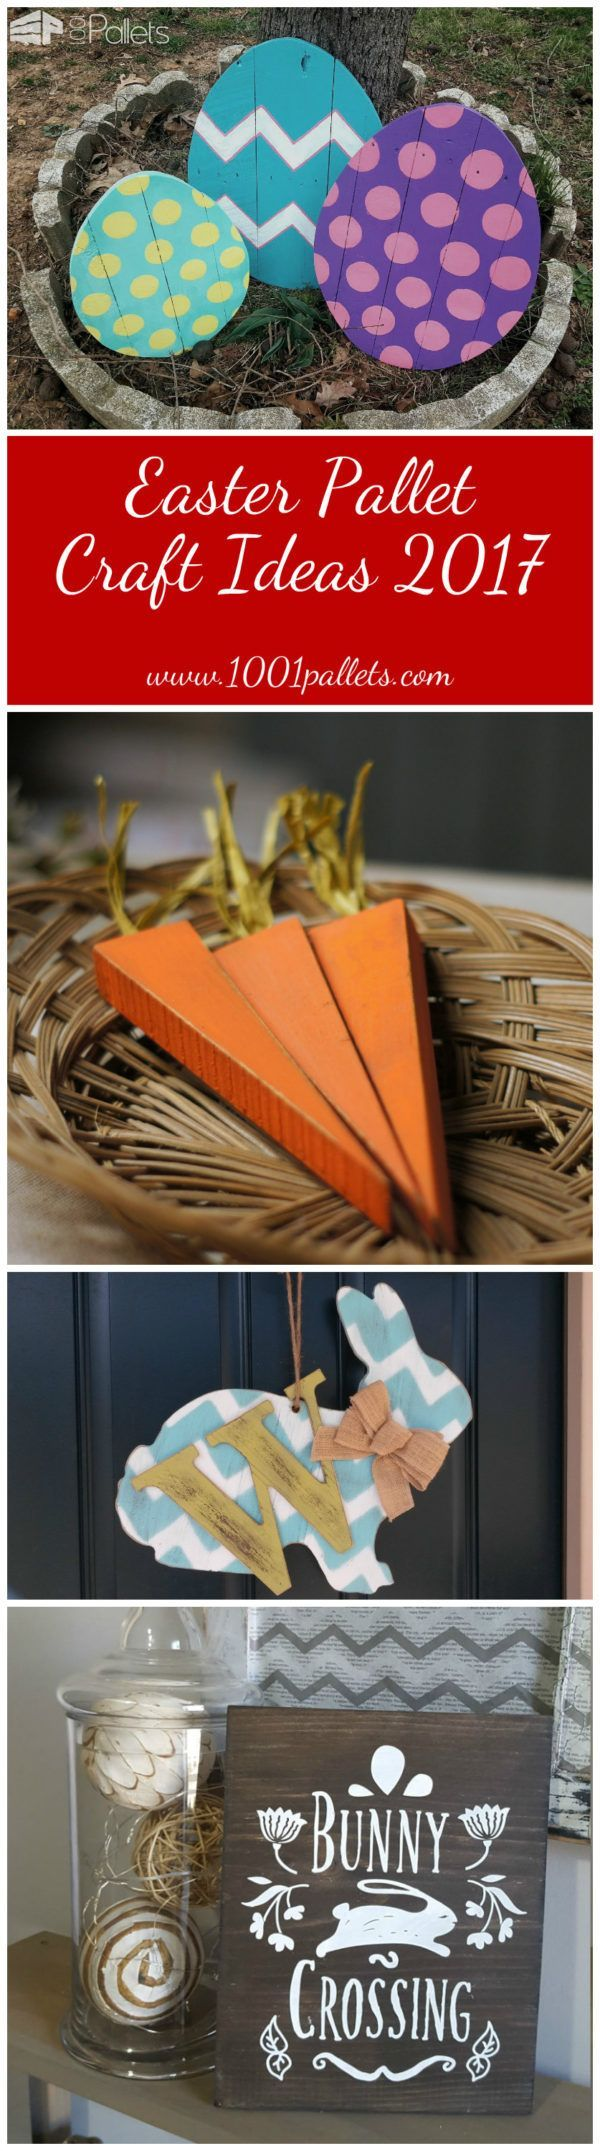 #Best-Of, #HolidayDecor, #Outdoors, #PartyDecor Aah, Easter - springtime, renewal, and... bunnies! Here are some great Easter Pallet Craft Ideas that you may want to try! Editor's note: Remember, bunnies and ducklings are adorable, but please use caution before you give critters to unsuspecting